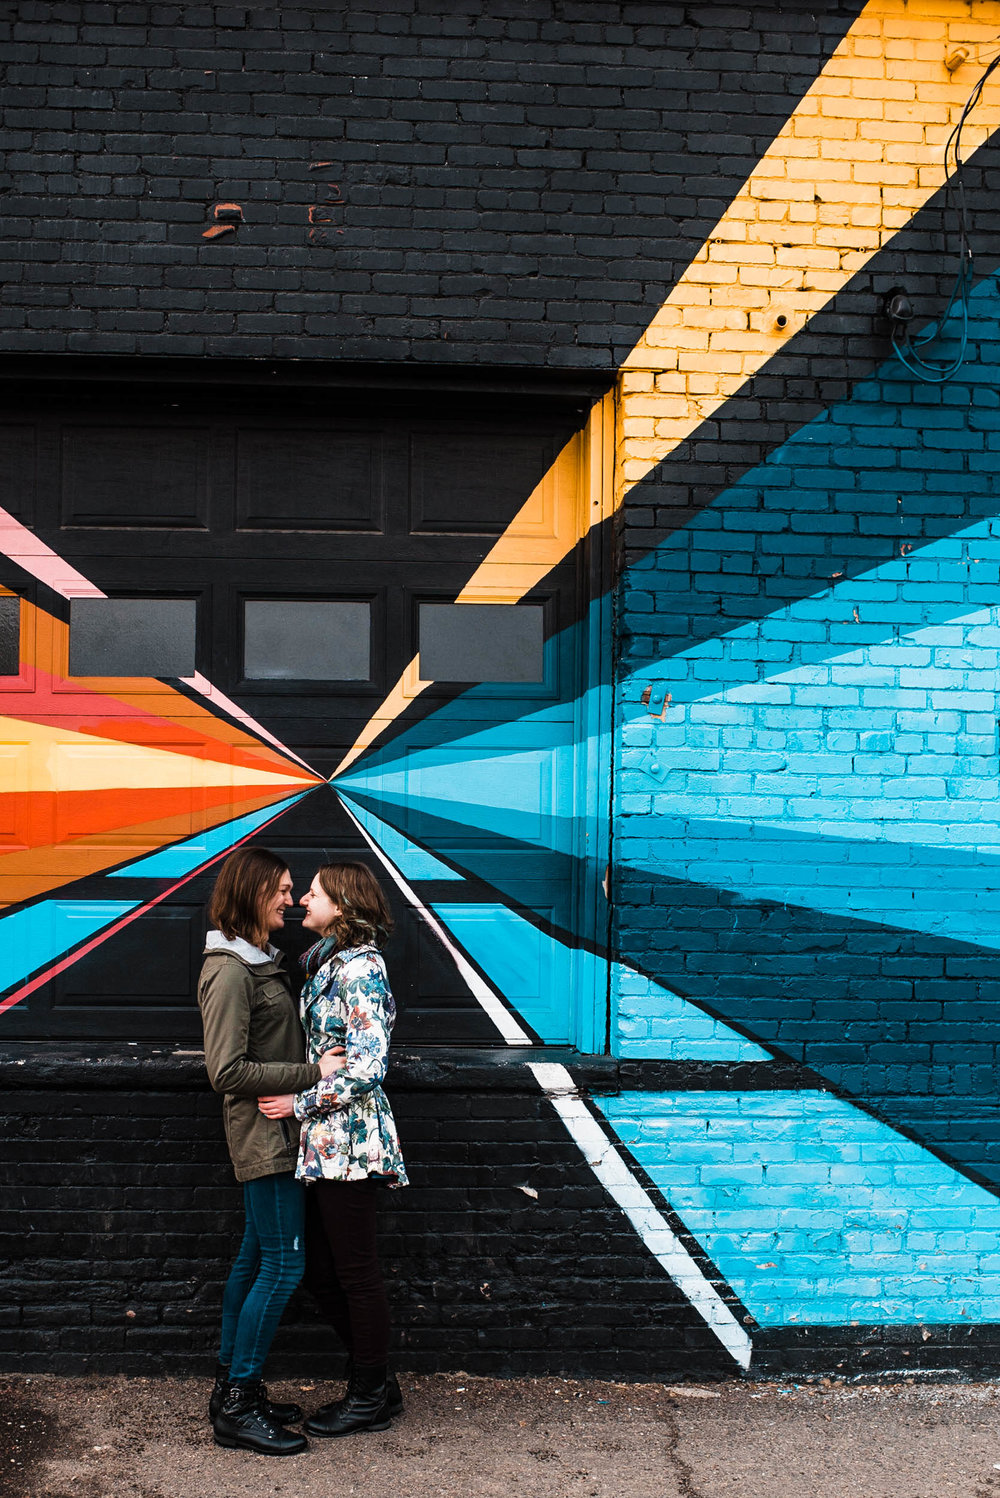 Same sex couple kissing infront of Denver Colorado RiNo art mural, RiNo Arts District, RiNo engagement session, LGBT wedding photographers, LGBT friendly wedding photographers, LGBT engagement photographers, Denver wedding photographers, Denver Engagement photographers